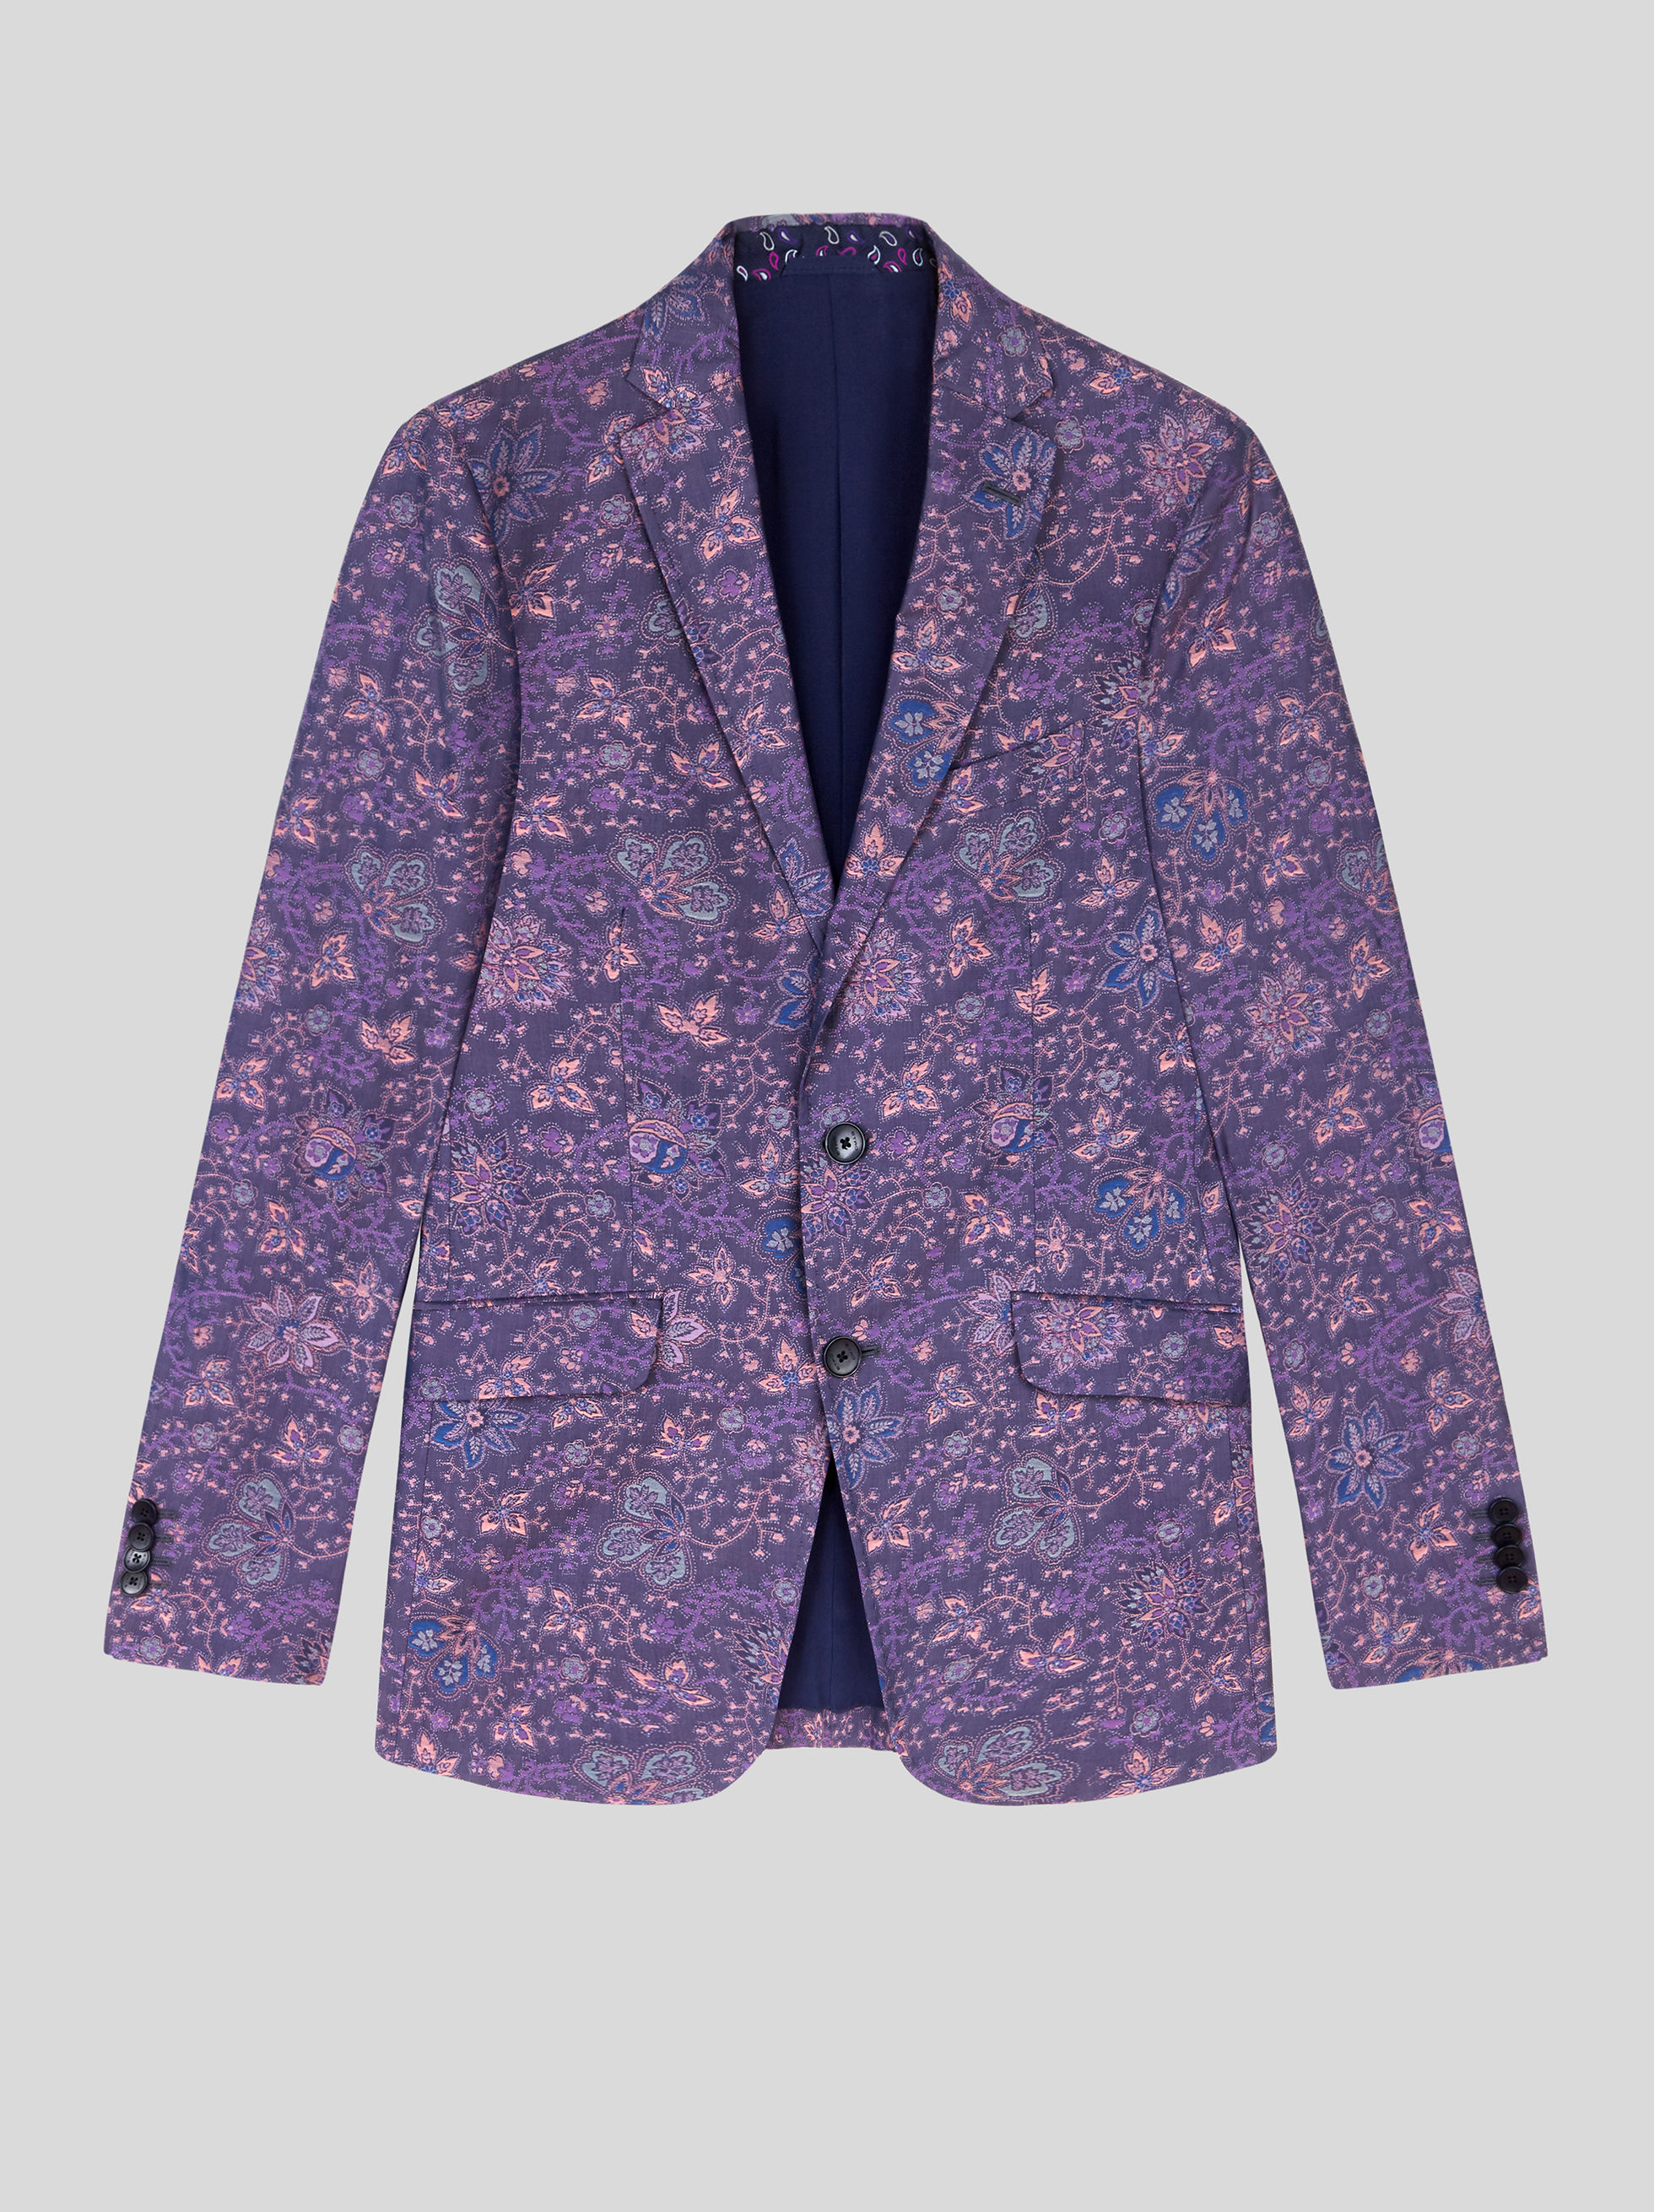 FLOWER JACQUARD TAILORED JACKET